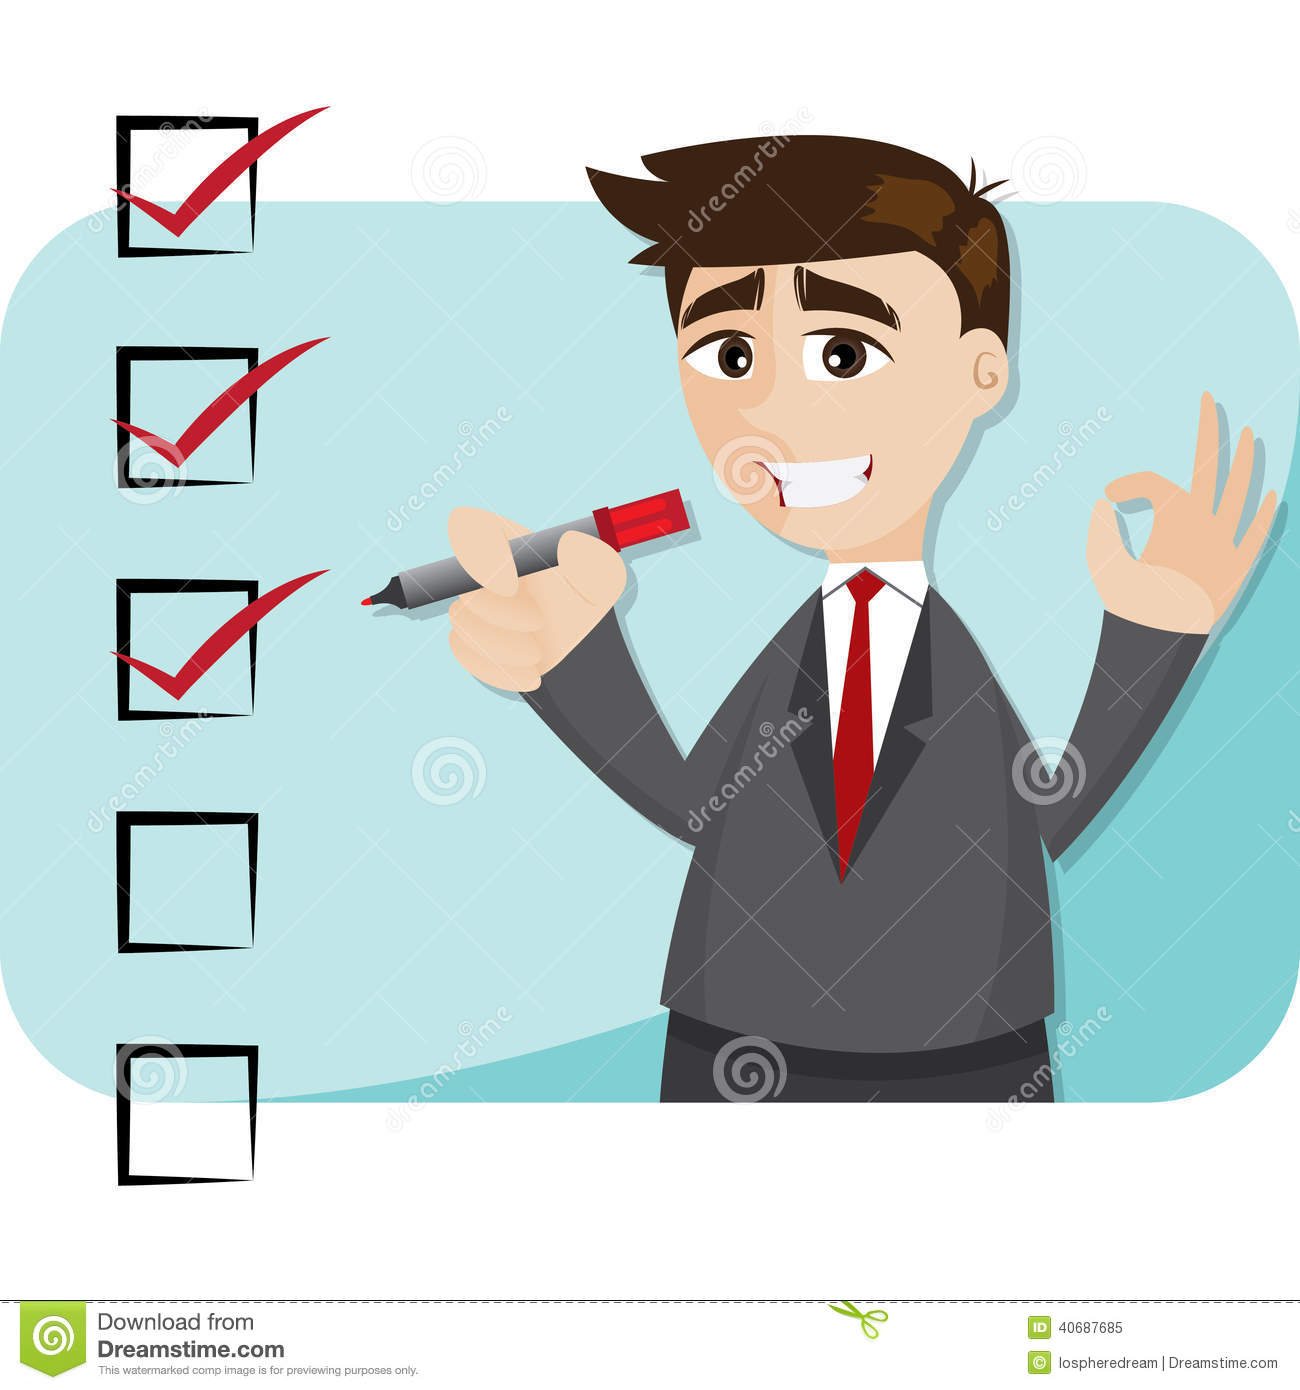 Cartoon Businessman With Checklist Stock Vector - Image: 40687685